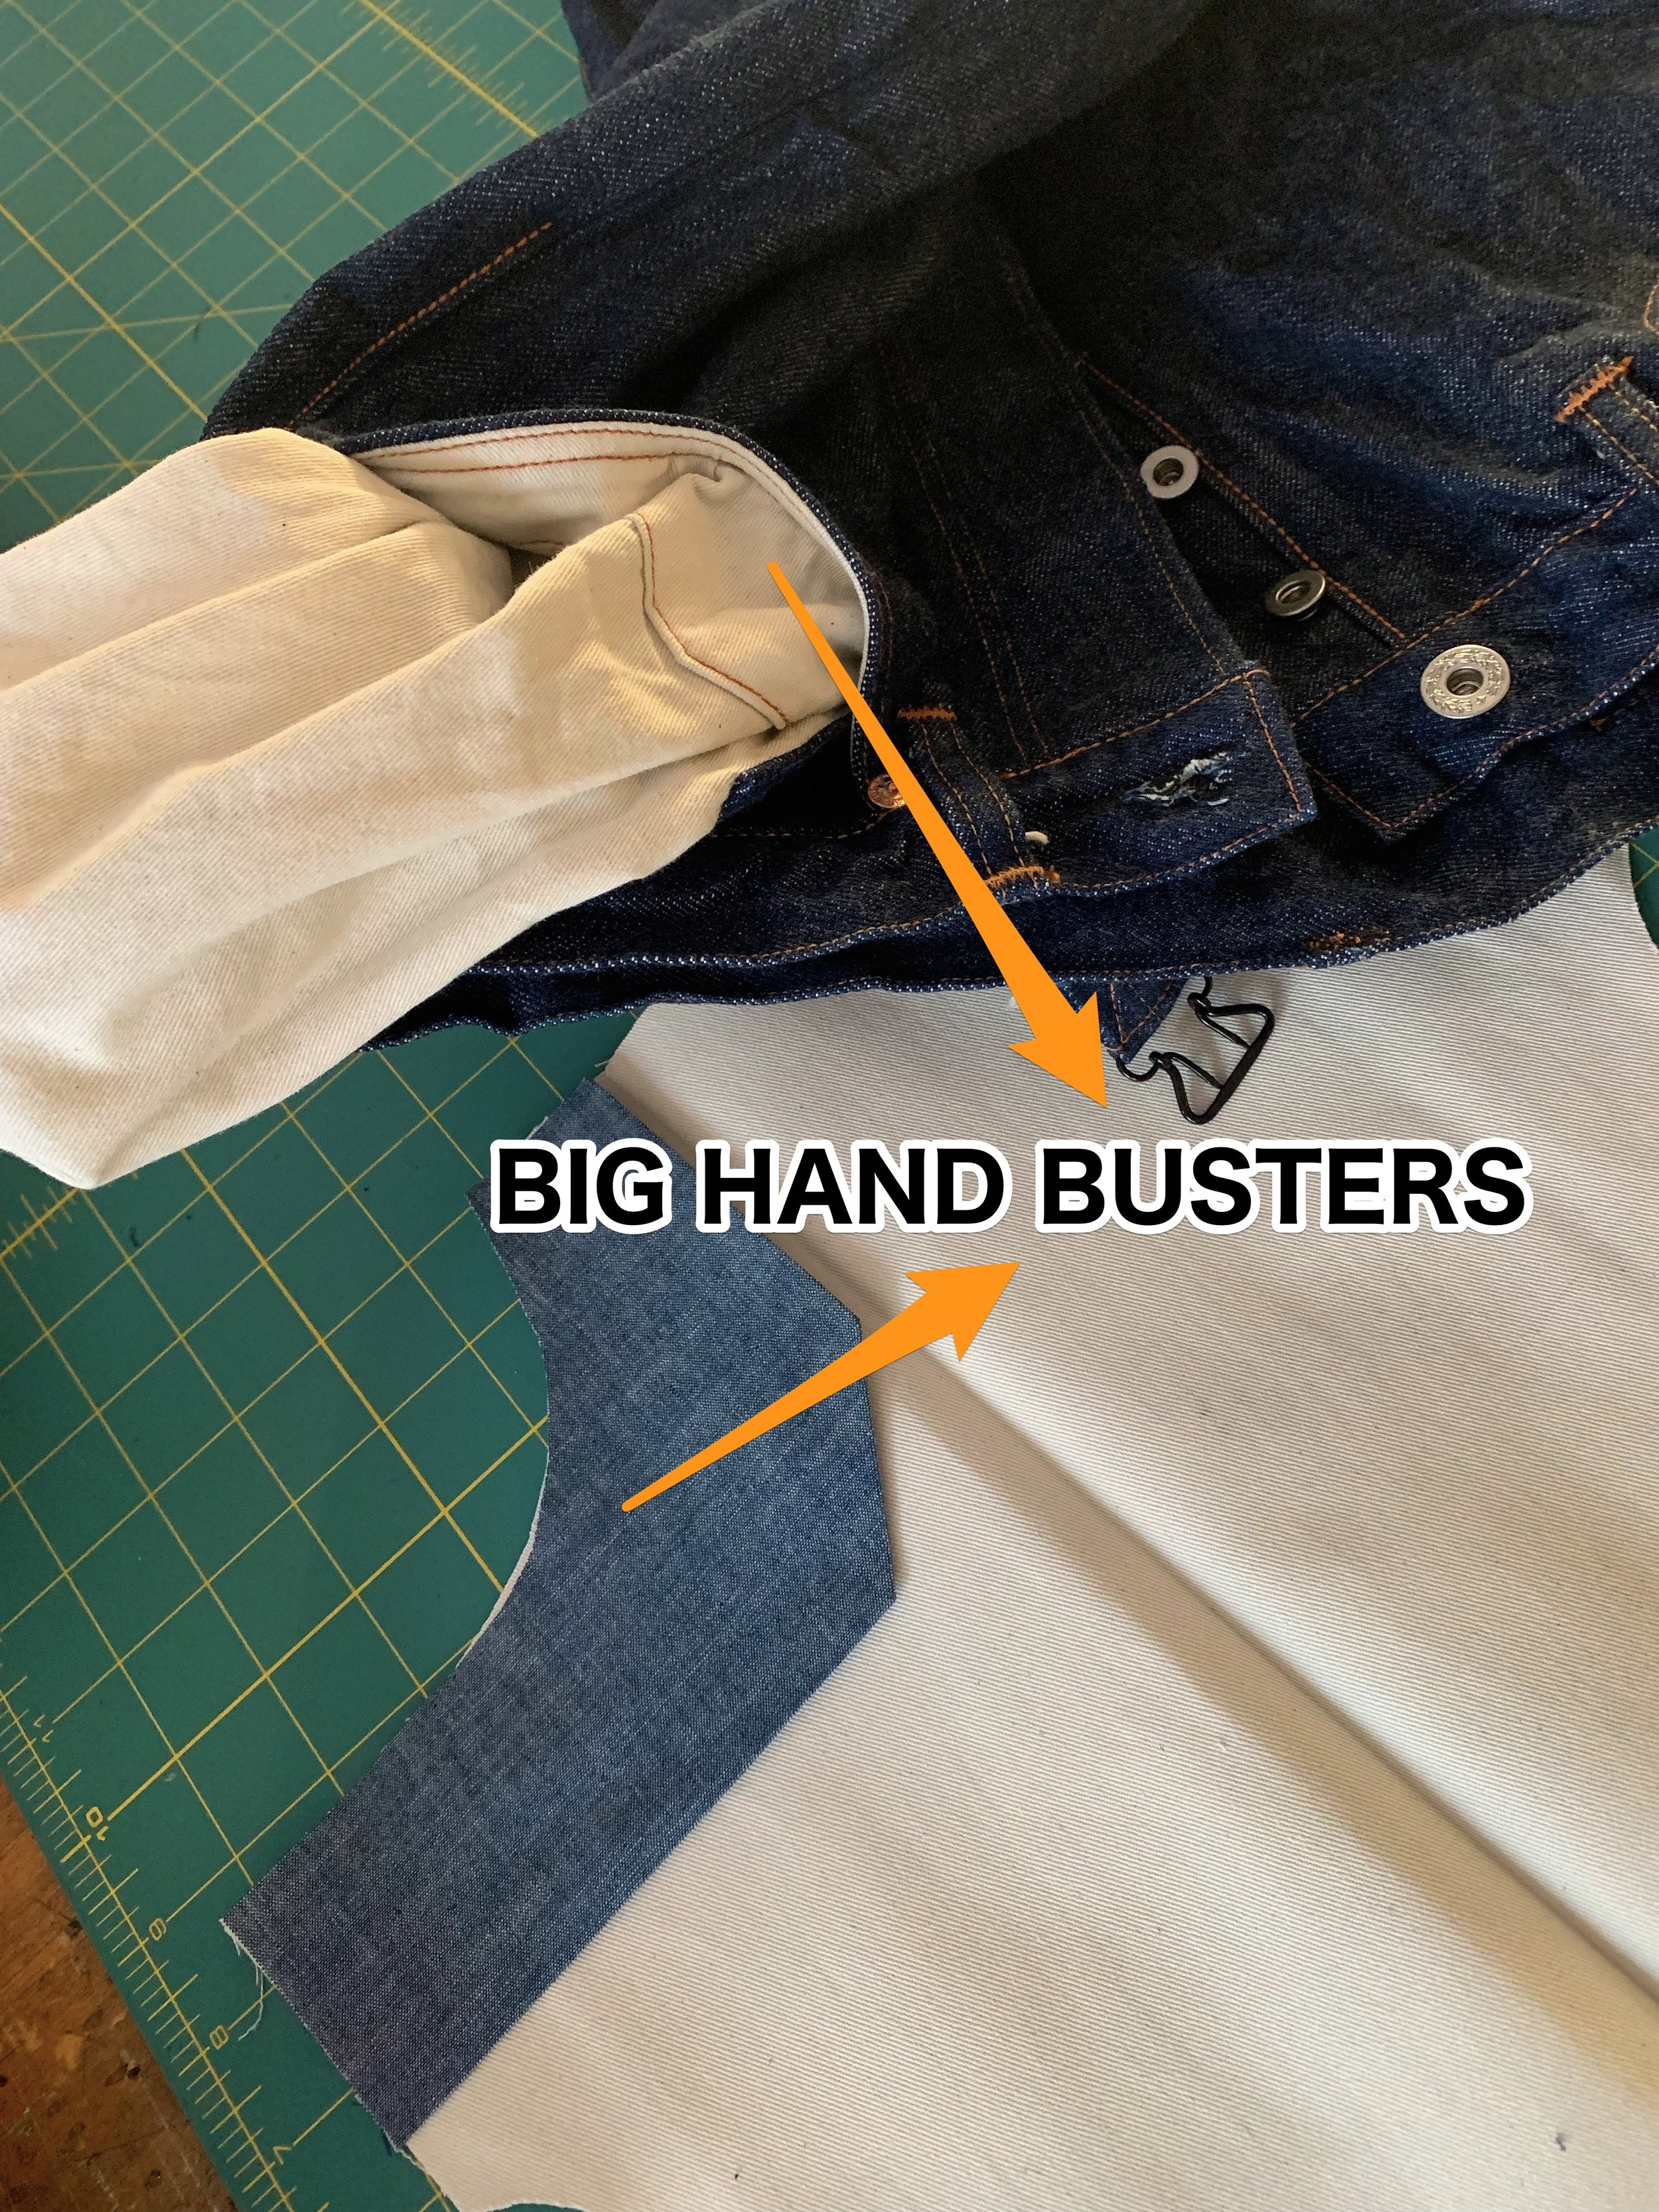 Reinforcement Fabric inside of hand pockets